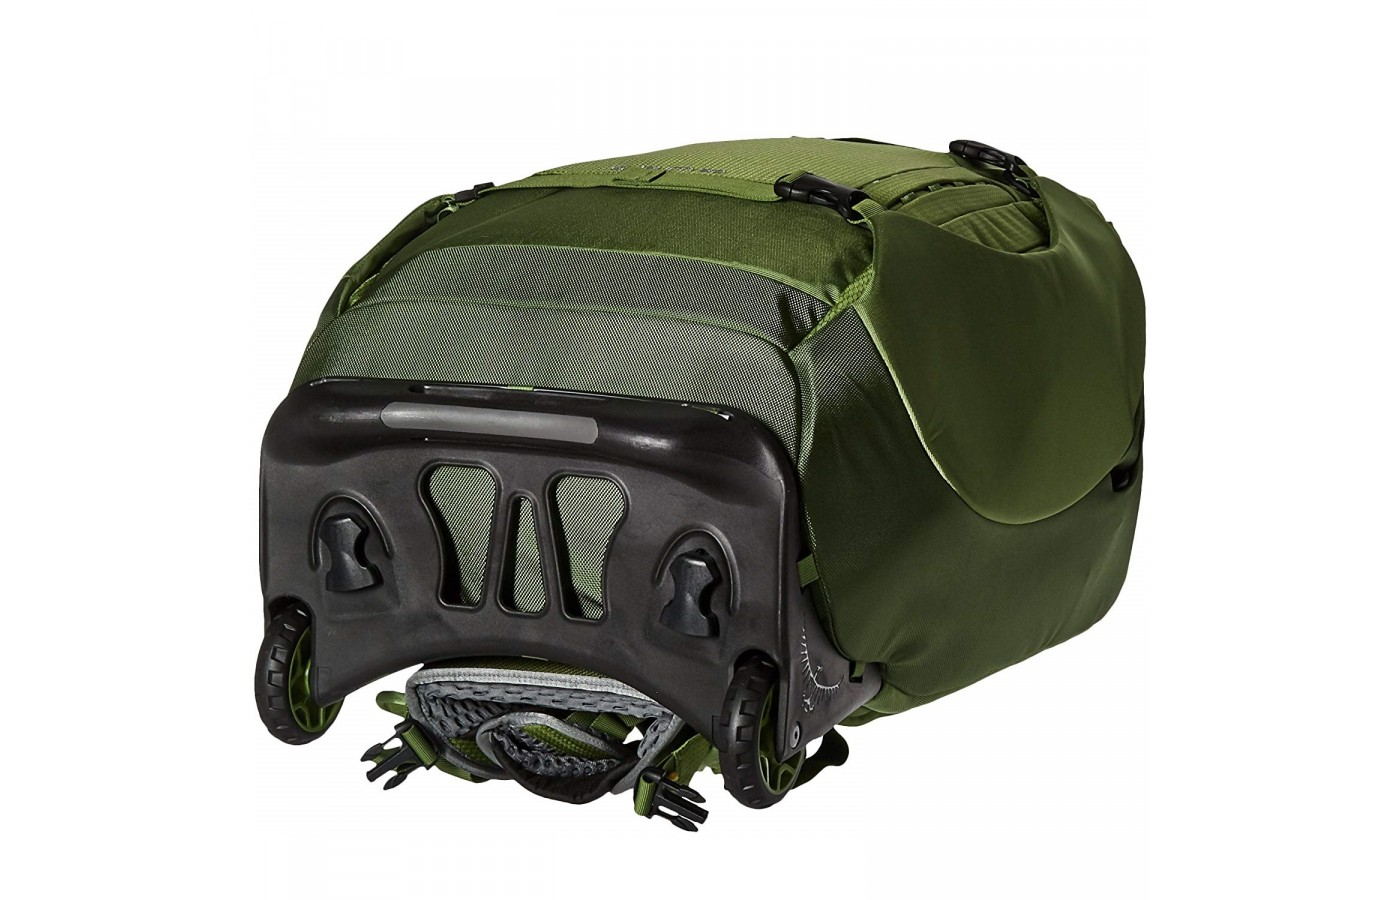 The Osprey Sojourn 80 also offers a 12 inch chassis that helps stabilize larger loads.